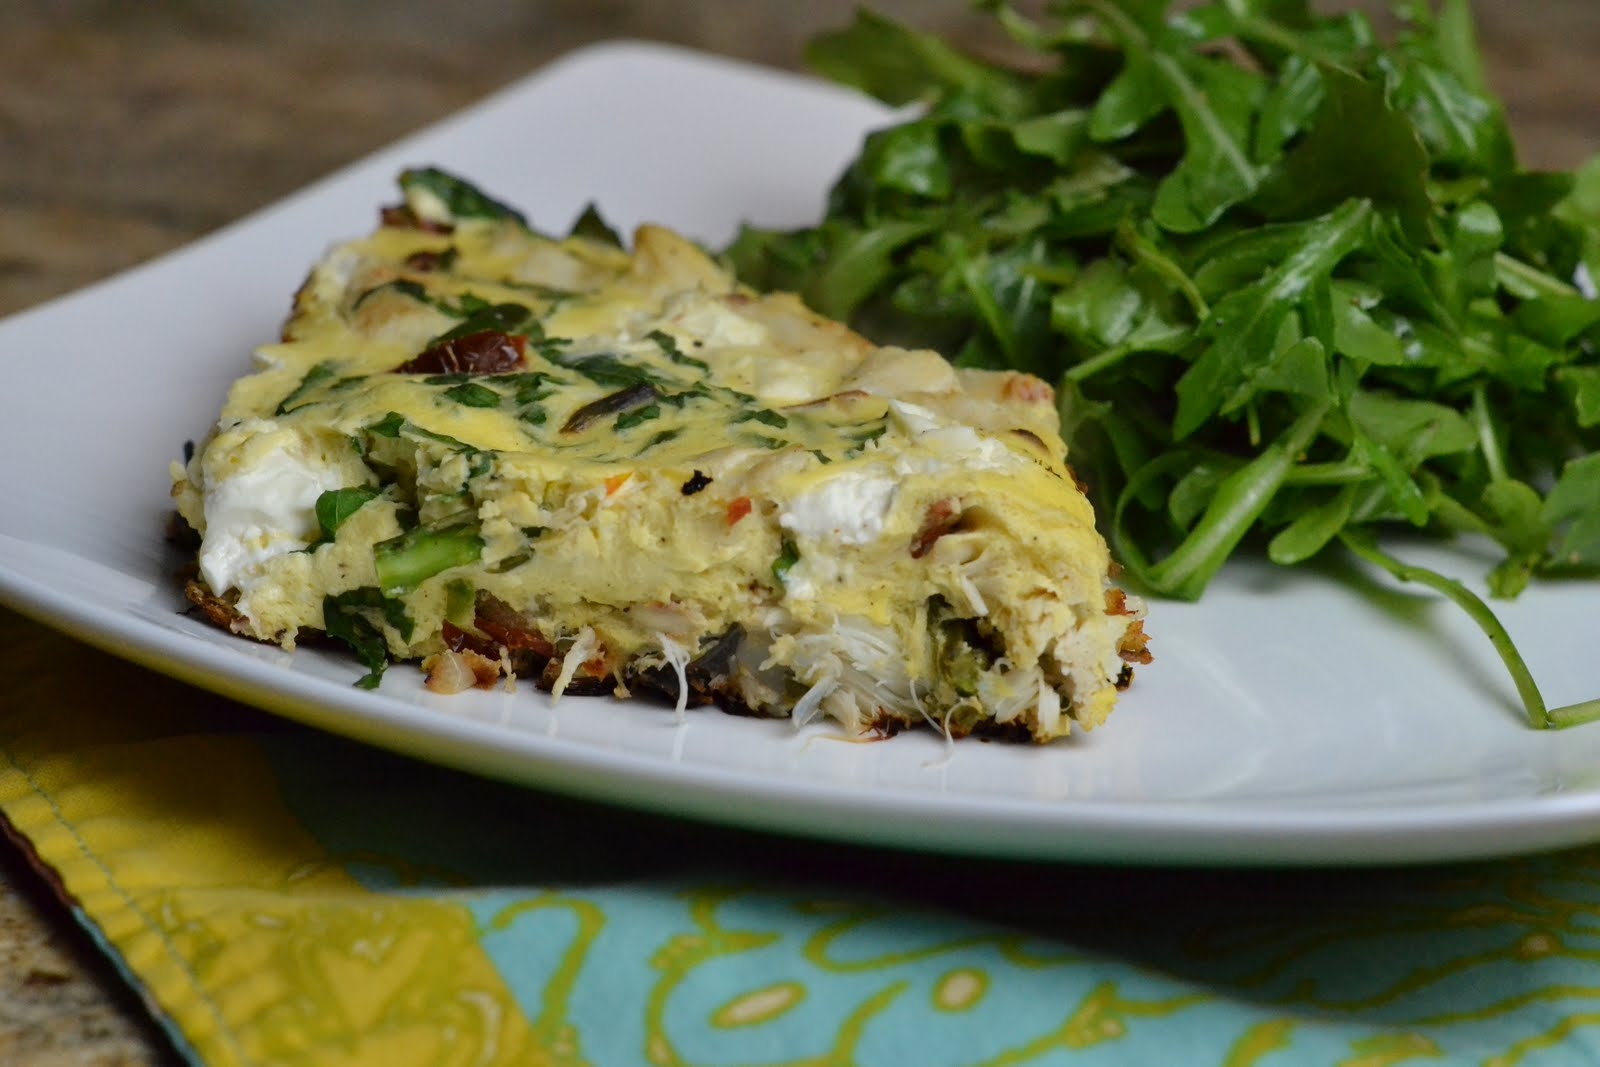 Cara's Cravings » Crab and Asparagus Frittata